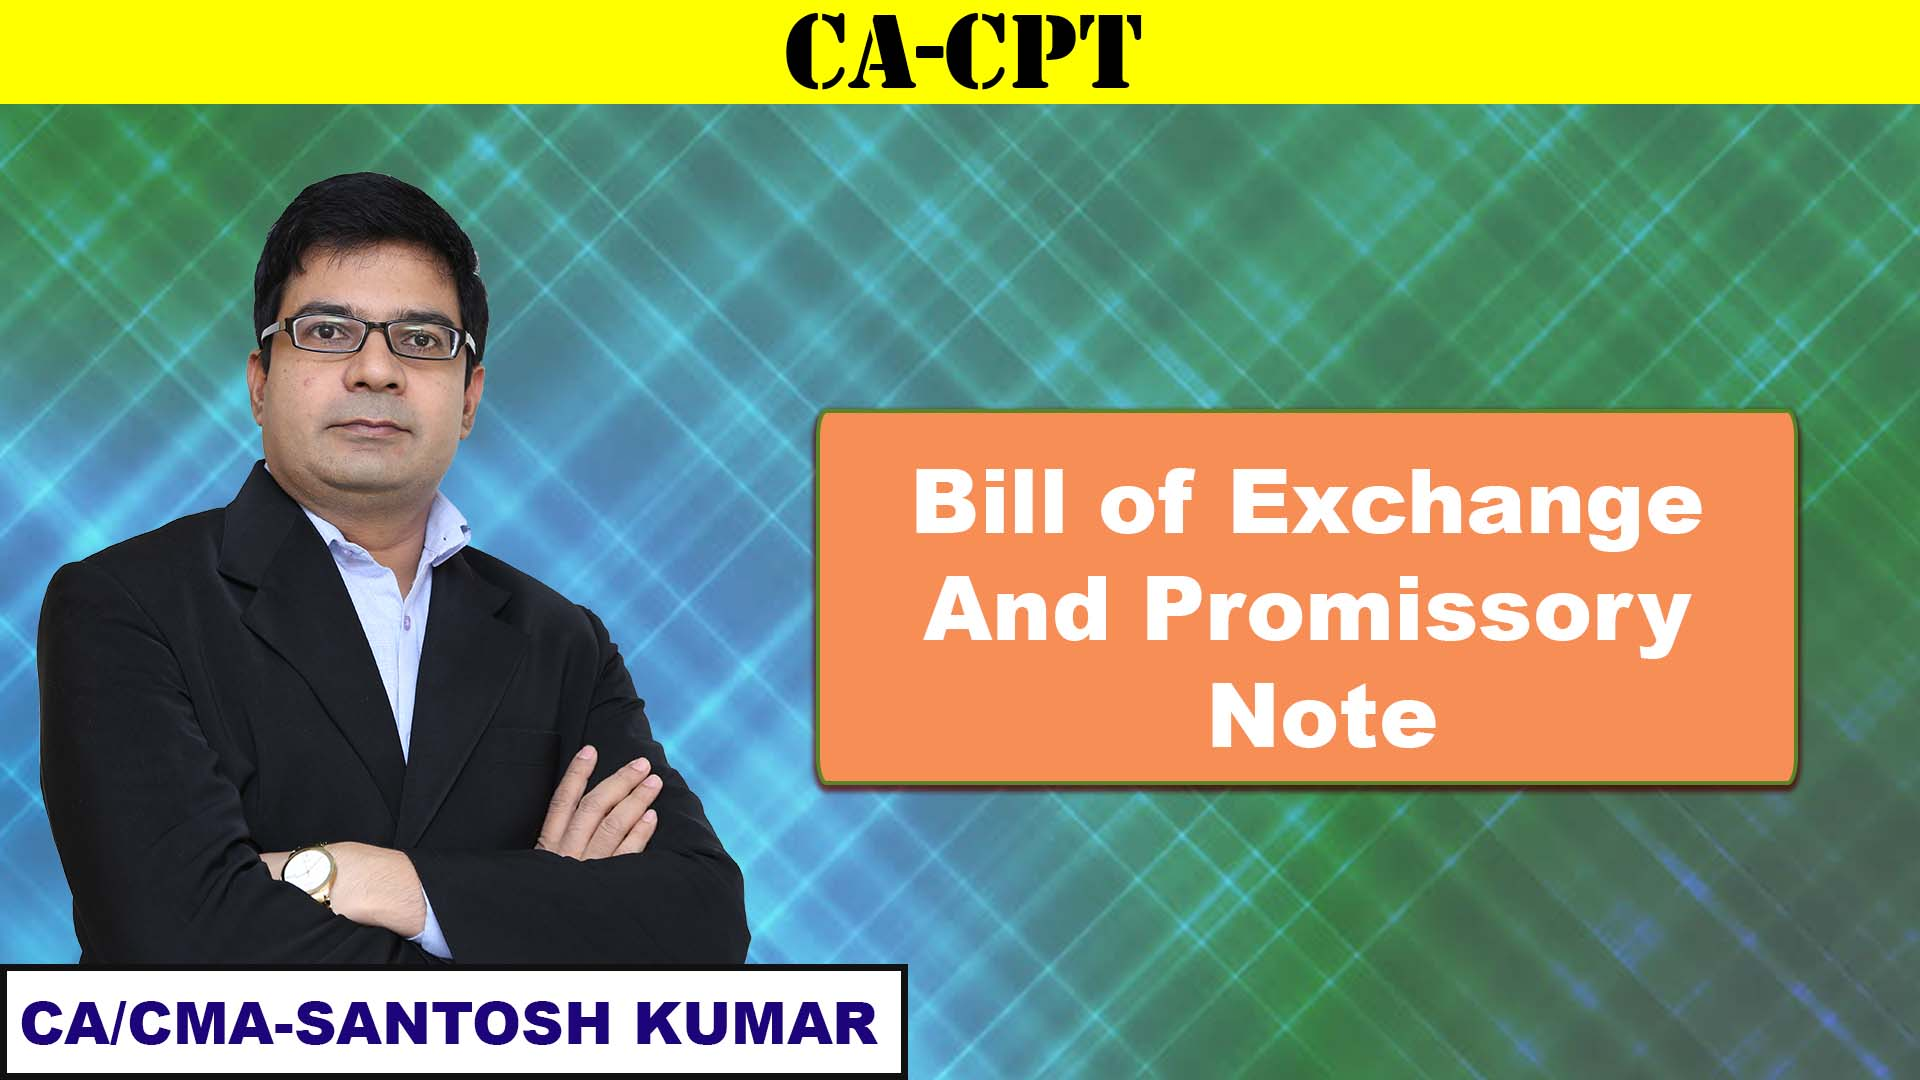 Bills Of Exchange and Promissory Note